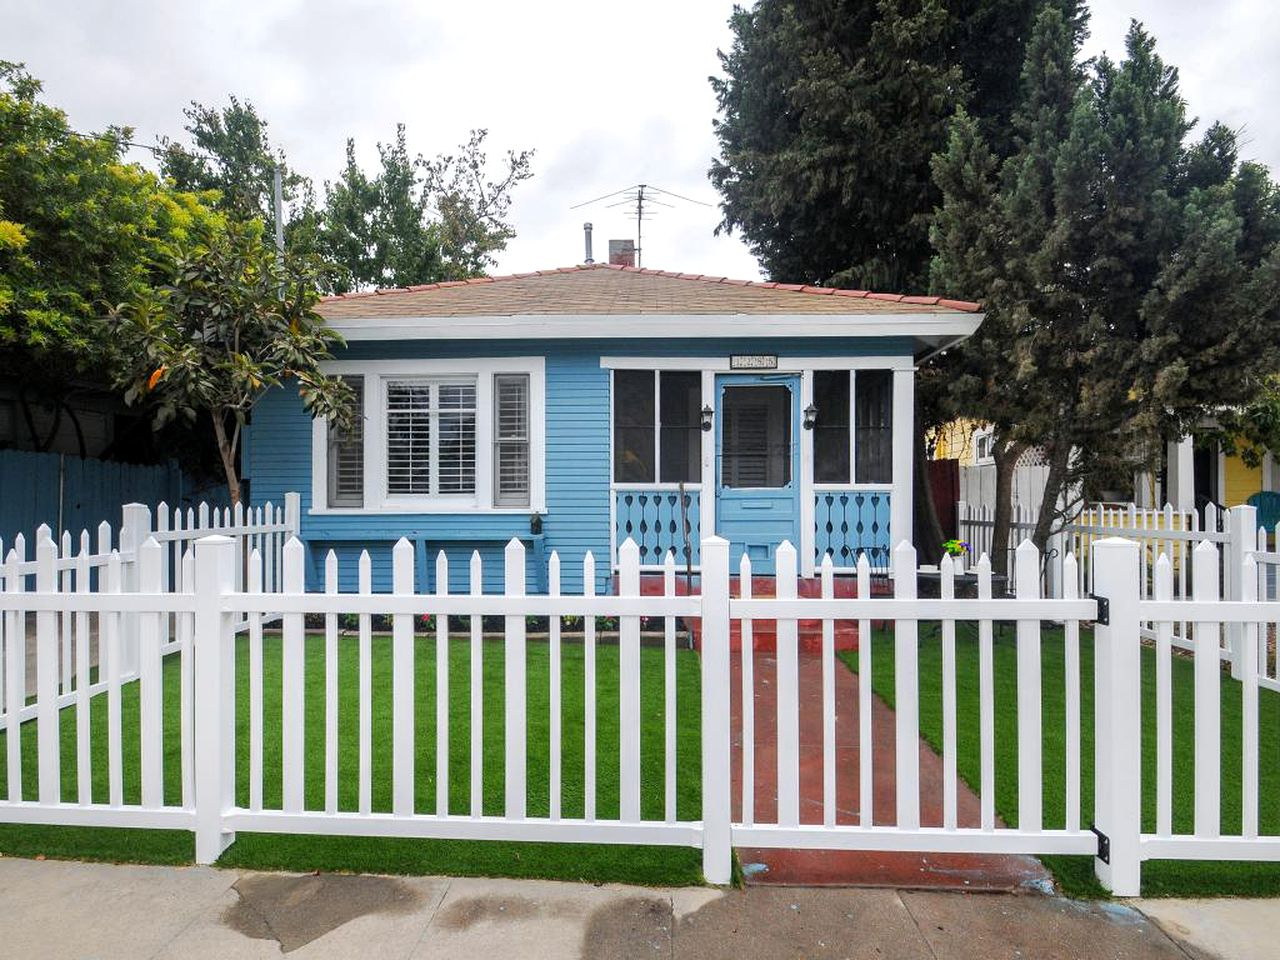 Cottages (San Diego, California, United States)